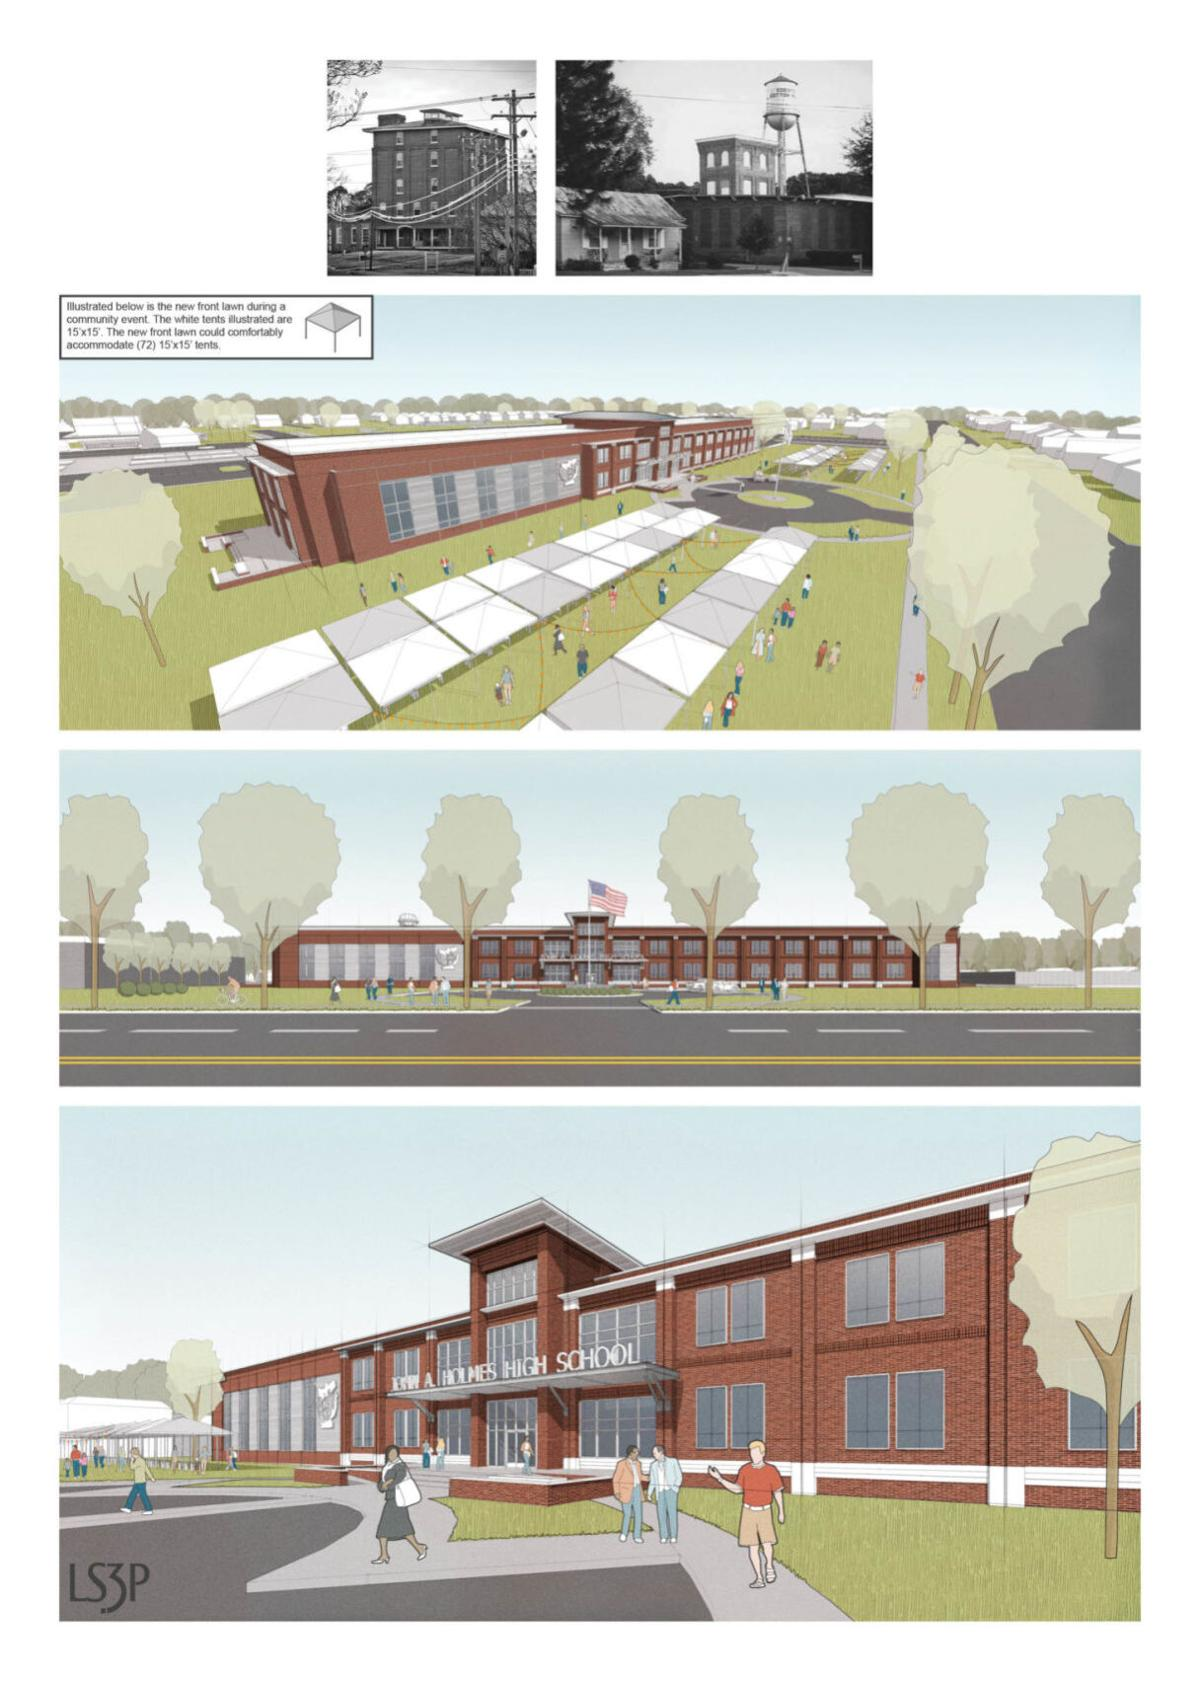 Story 3: Proposed design for new high school